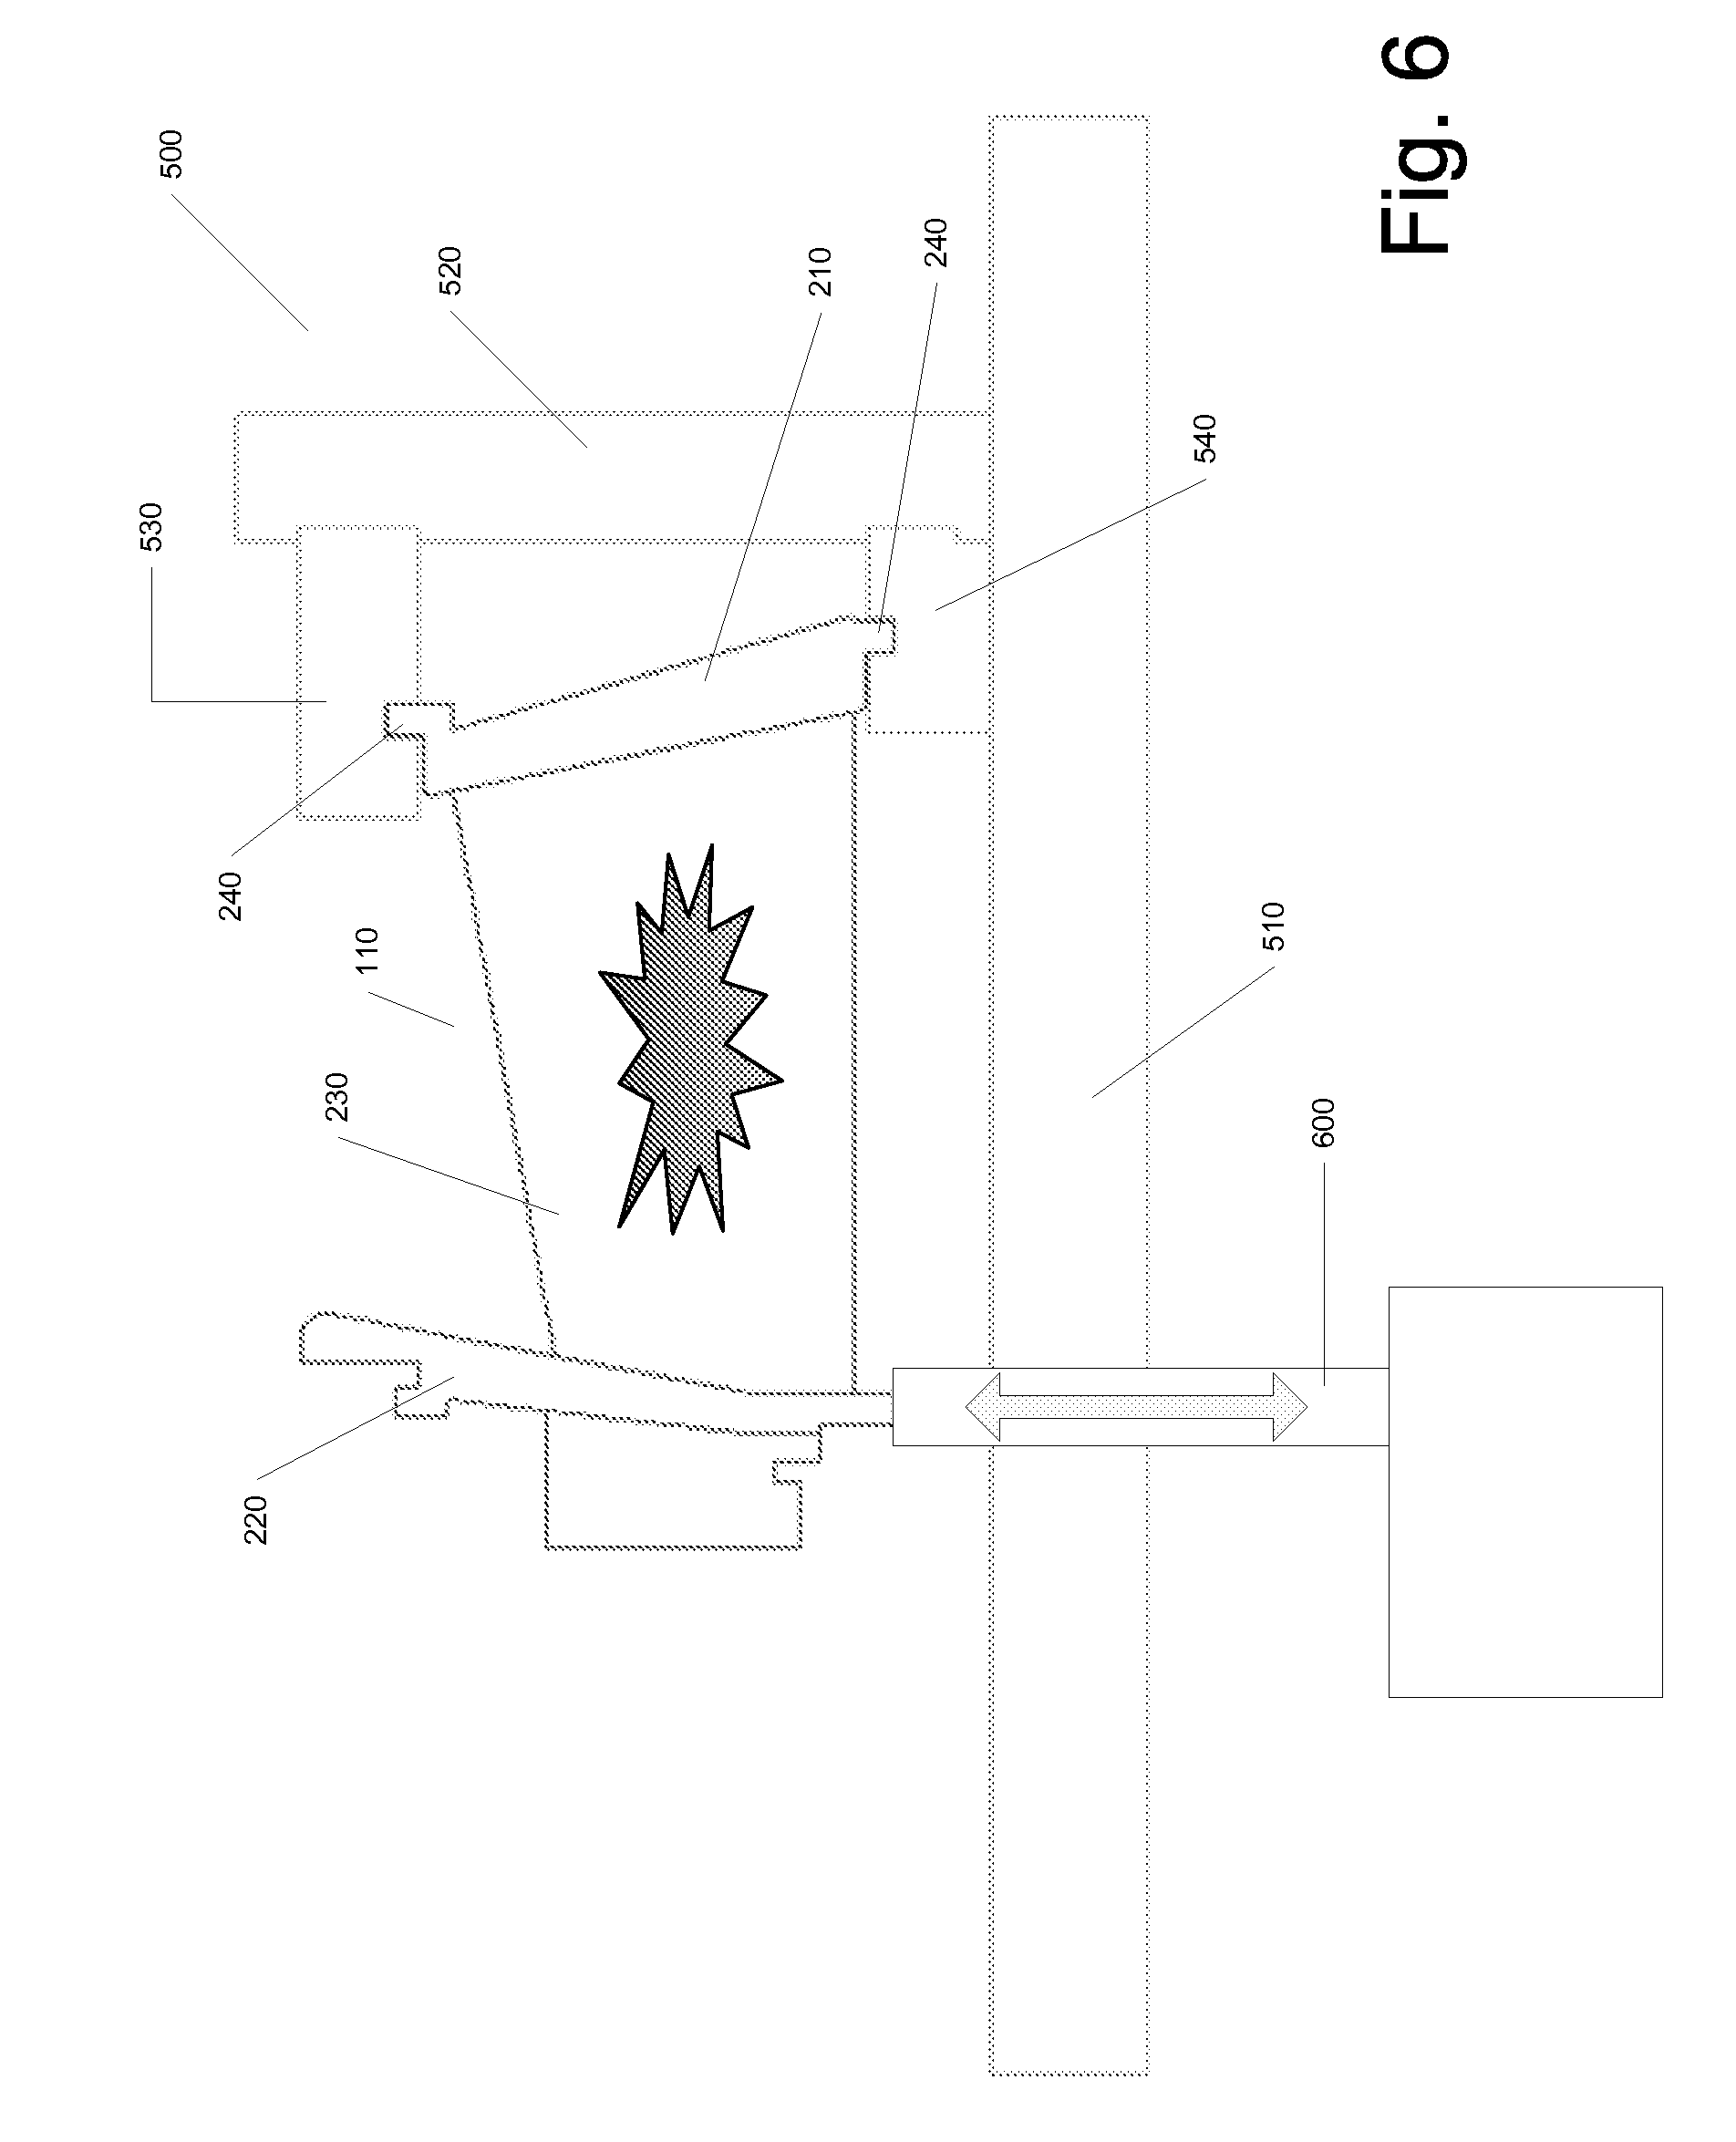 Patent US Method for Correcting Downstream Deflection